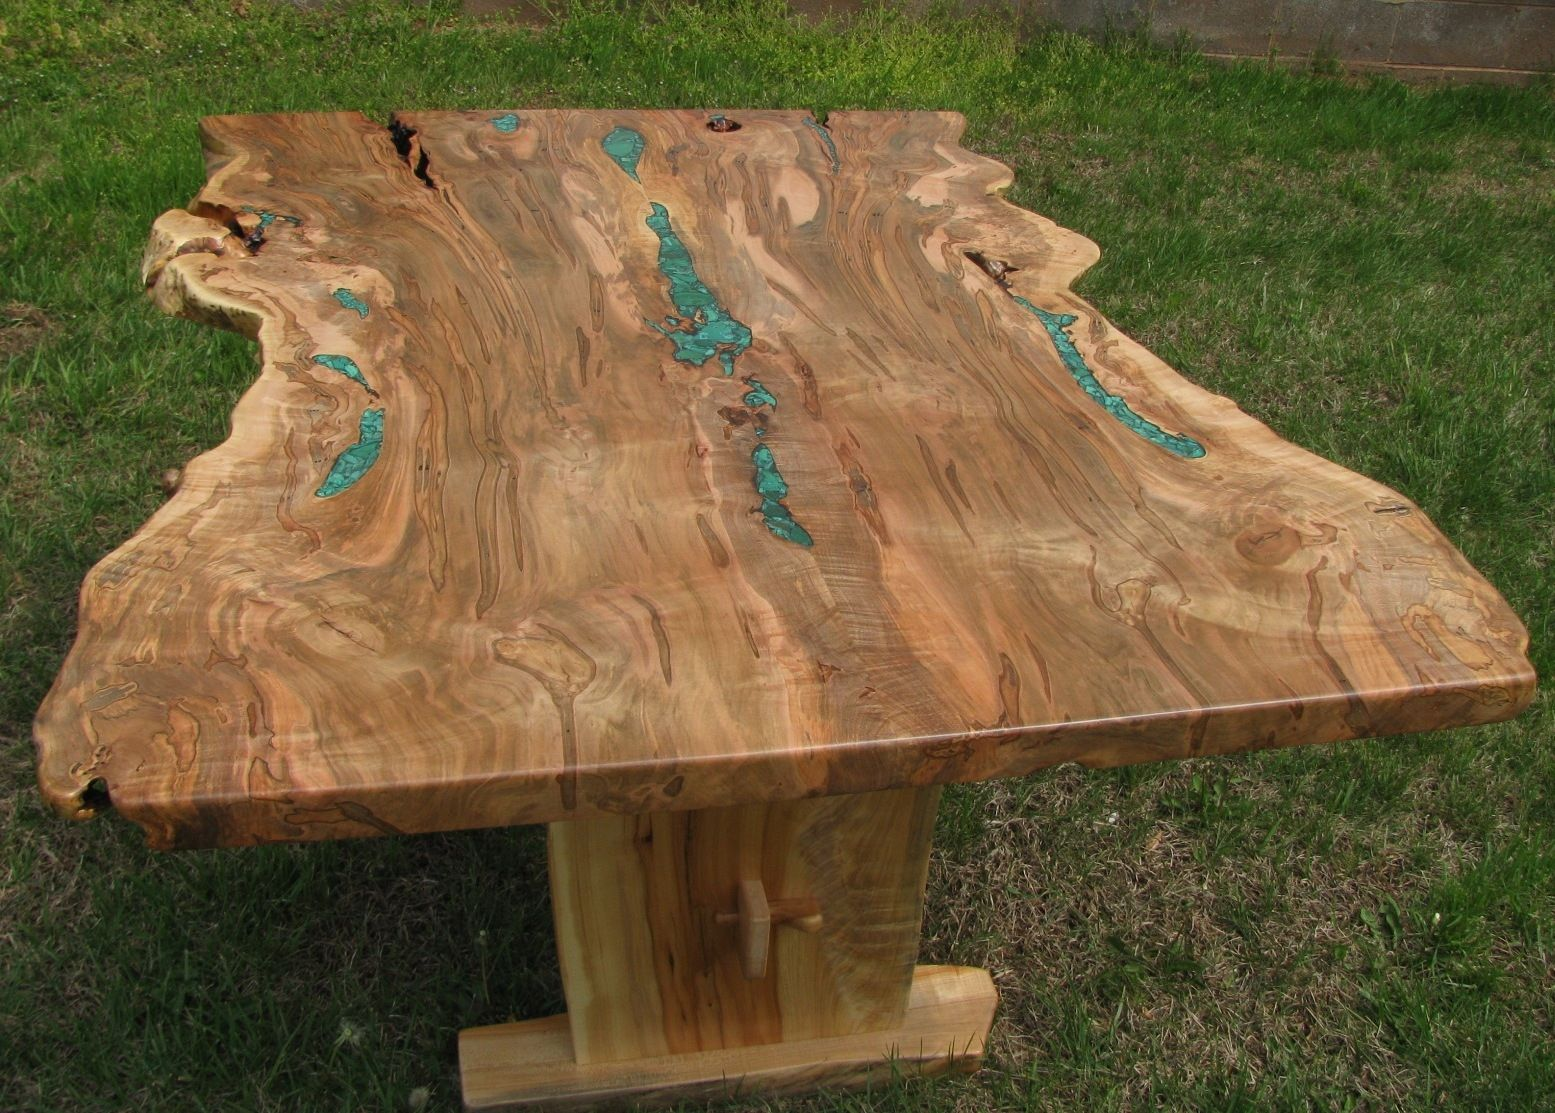 Live Edge Ambrosia Maple Dining Trestle Table Jointing